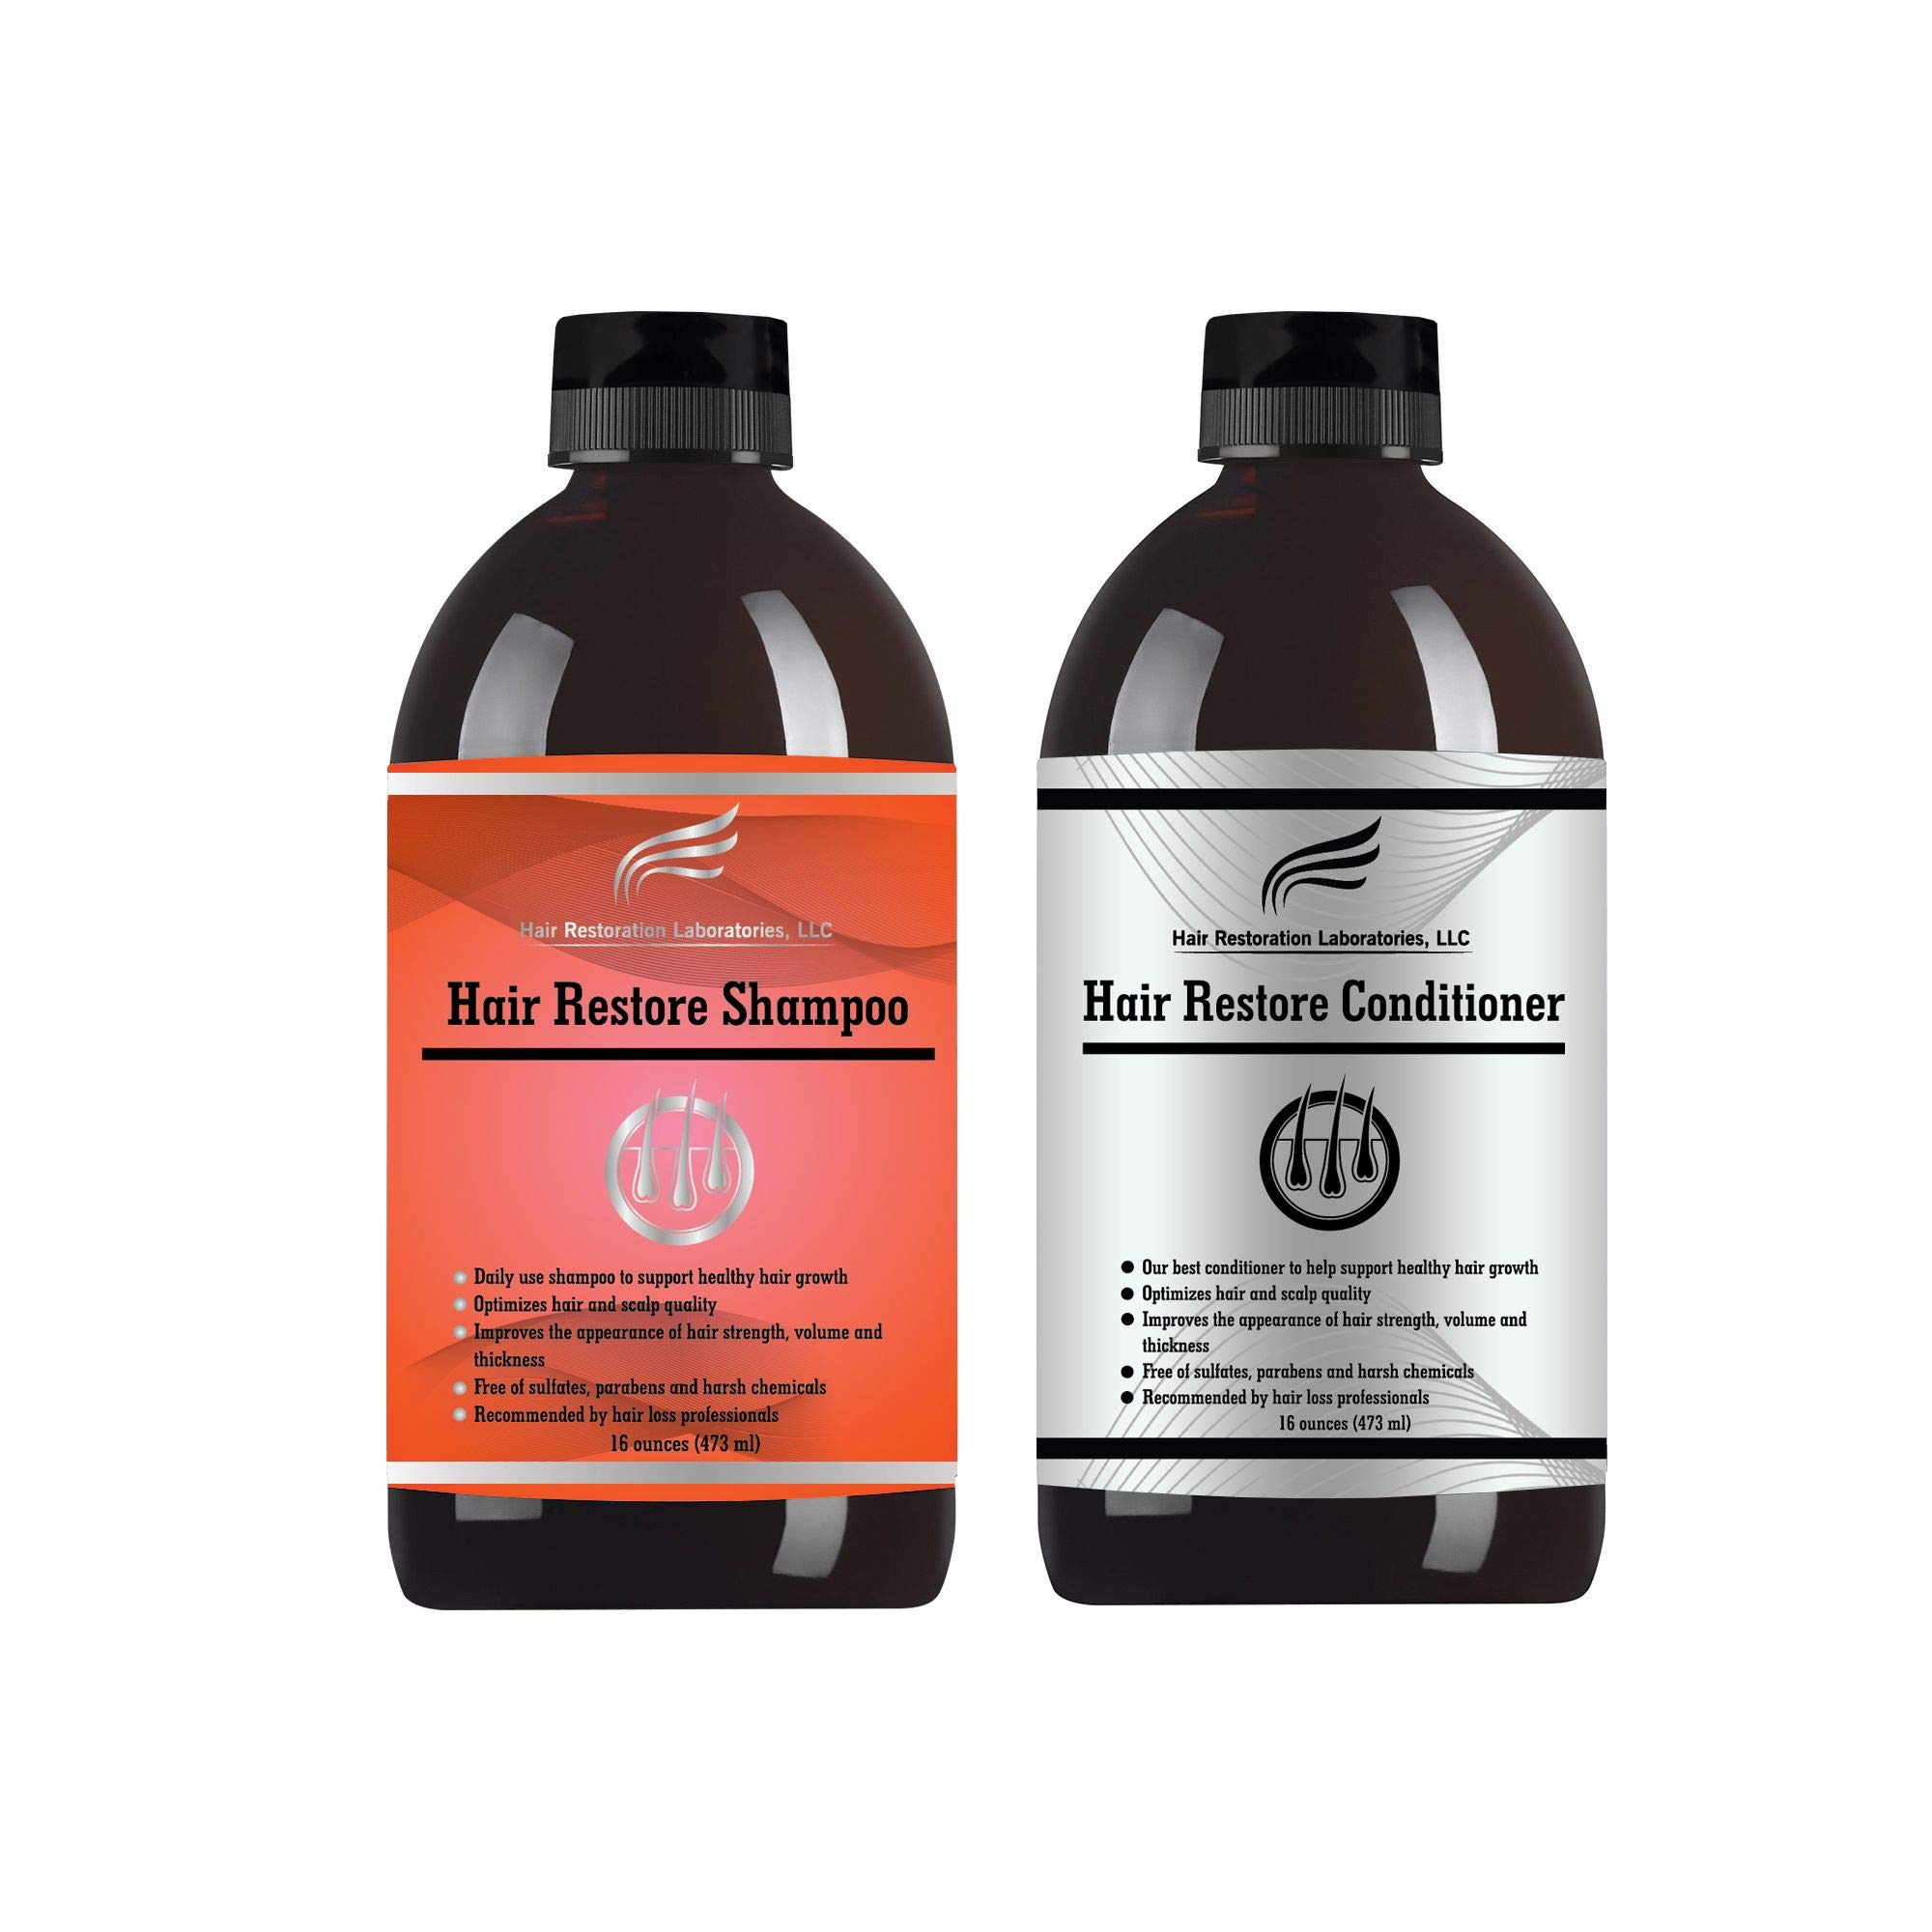 Hair Restoration Laboratories' Hair Restore Hair Loss Shampoo and Conditioner Set. Over 30 DHT Blockers. The Most Effective, Daily Use, Hair Growth Shampoo and Conditioner Set For Men and Woman by Hair Restoration Laboratories, LLC